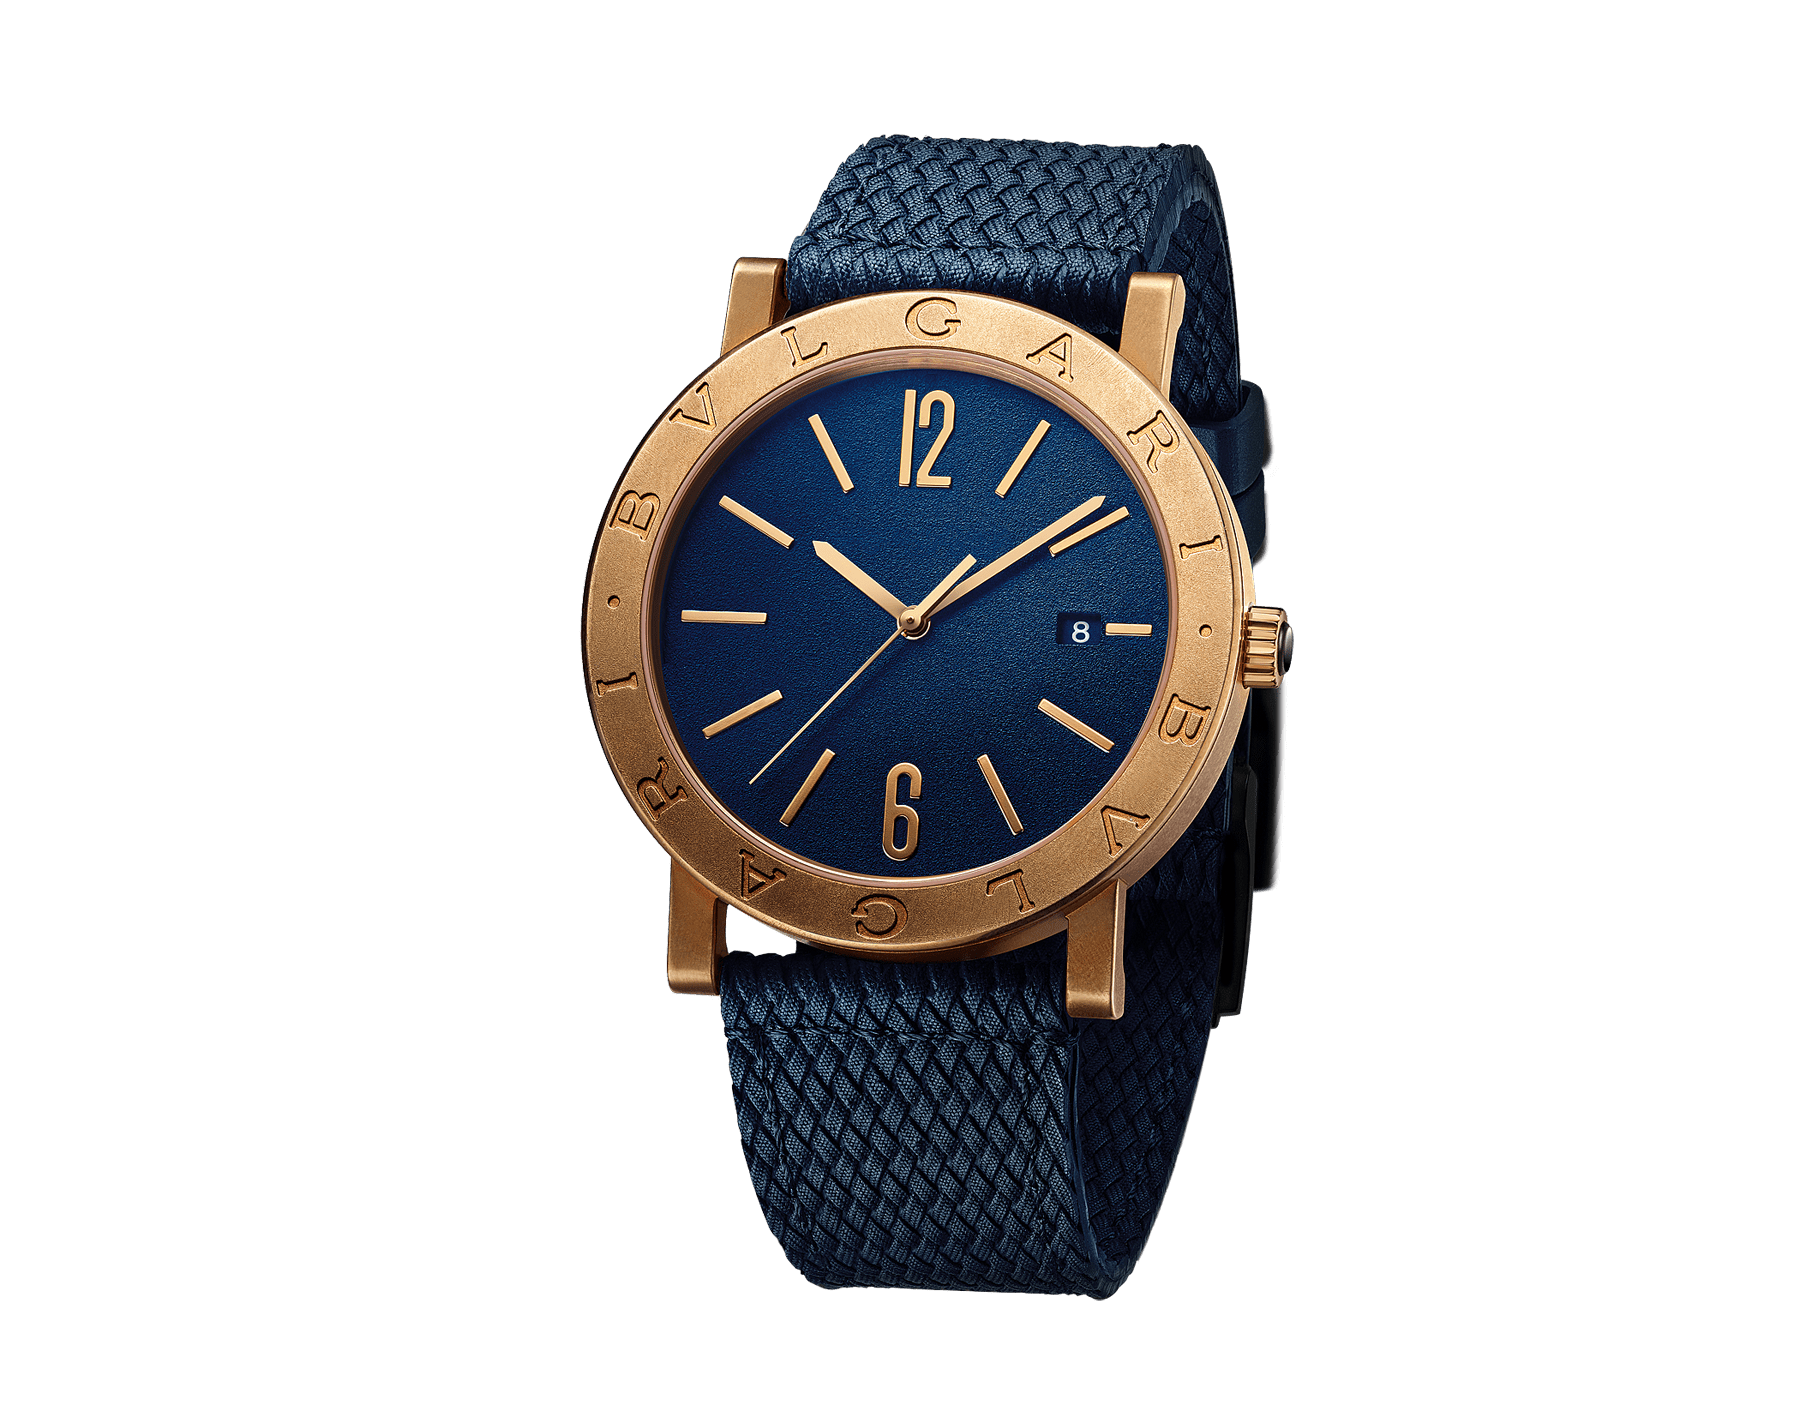 BVLGARI BVLGARI watch with mechanical manufacture movement, automatic winding and date, bronze case with double logo engraving on the bezel, blue dial and a blue rubber bracelet. 103132 image 1